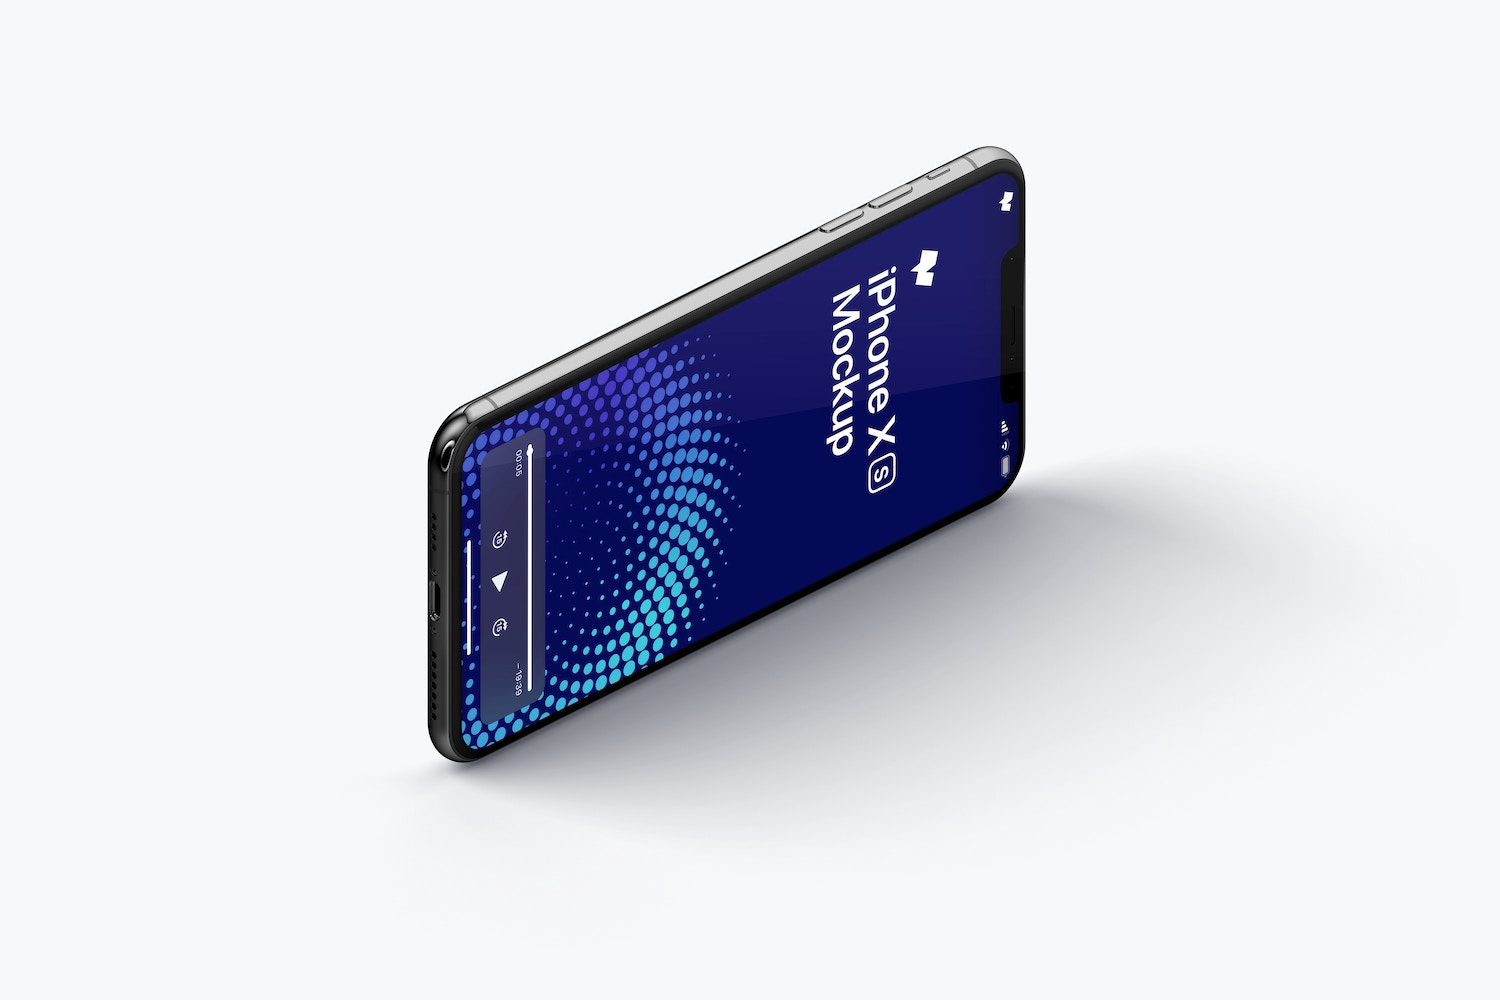 iPhone XS Max Mockup, Isometric Right View 03 by Original Mockups on Original Mockups